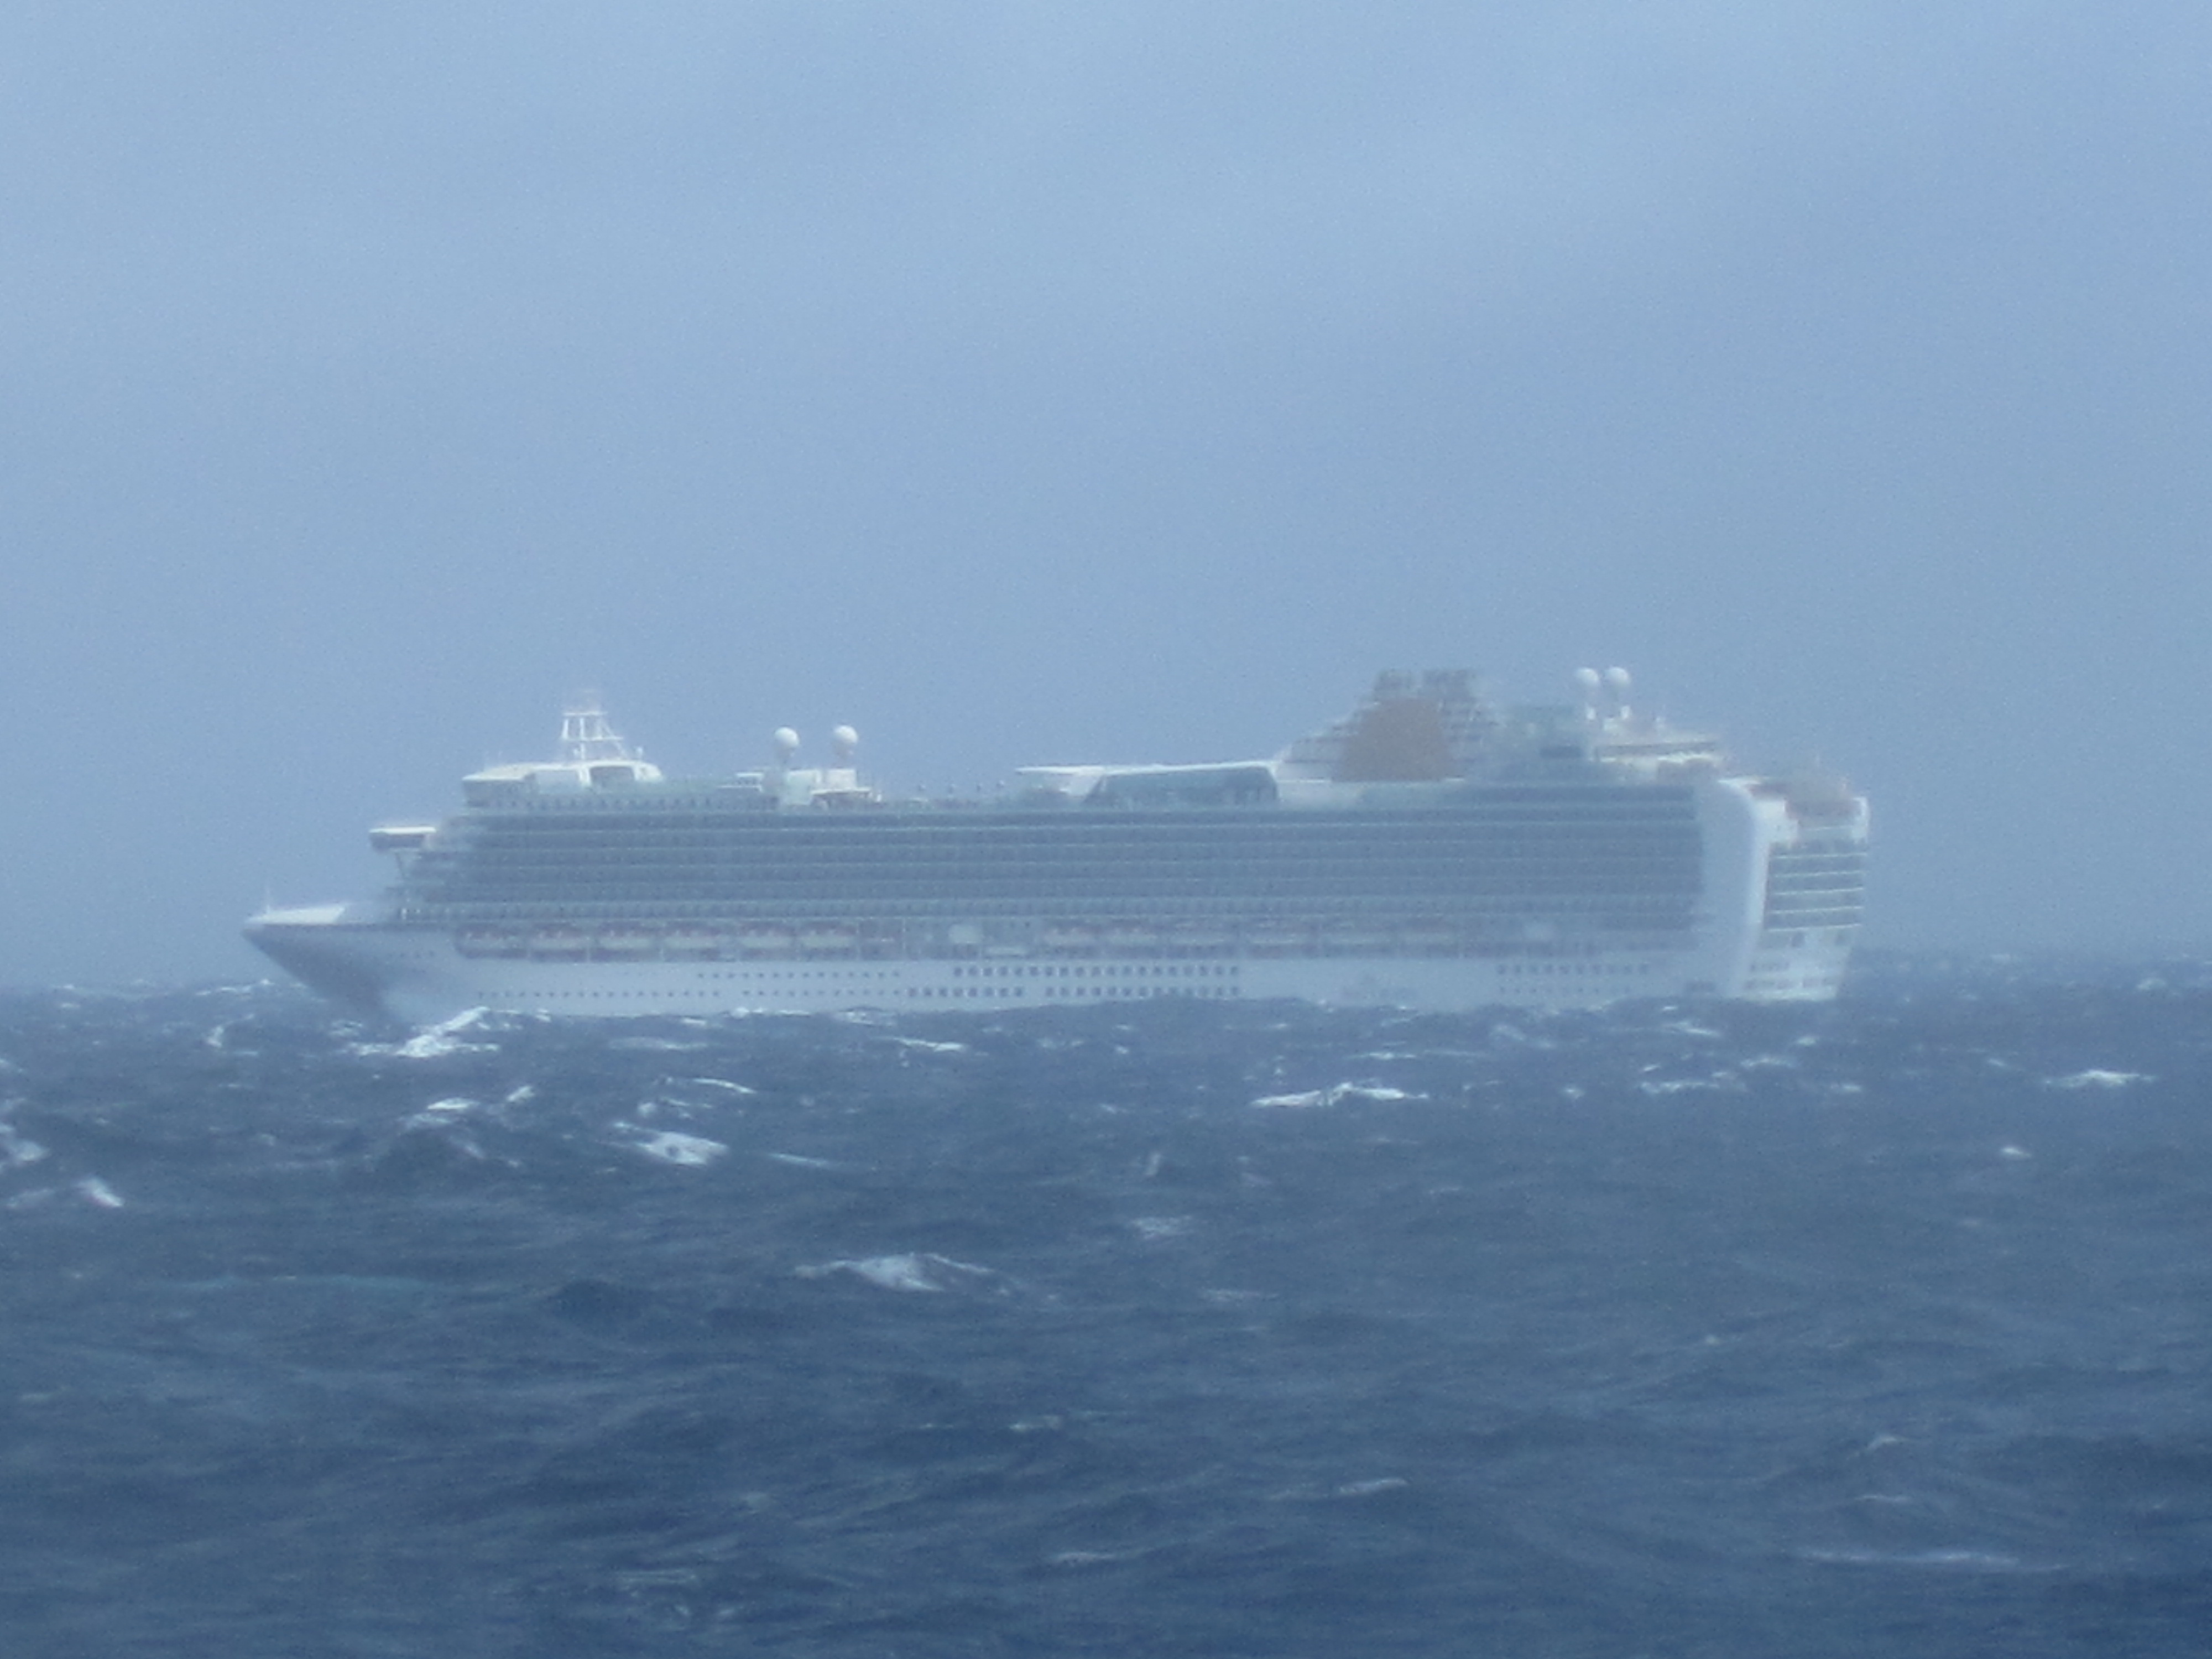 Bay of biscay crossing day 1 cruisemiss cruise blog view publicscrutiny Gallery